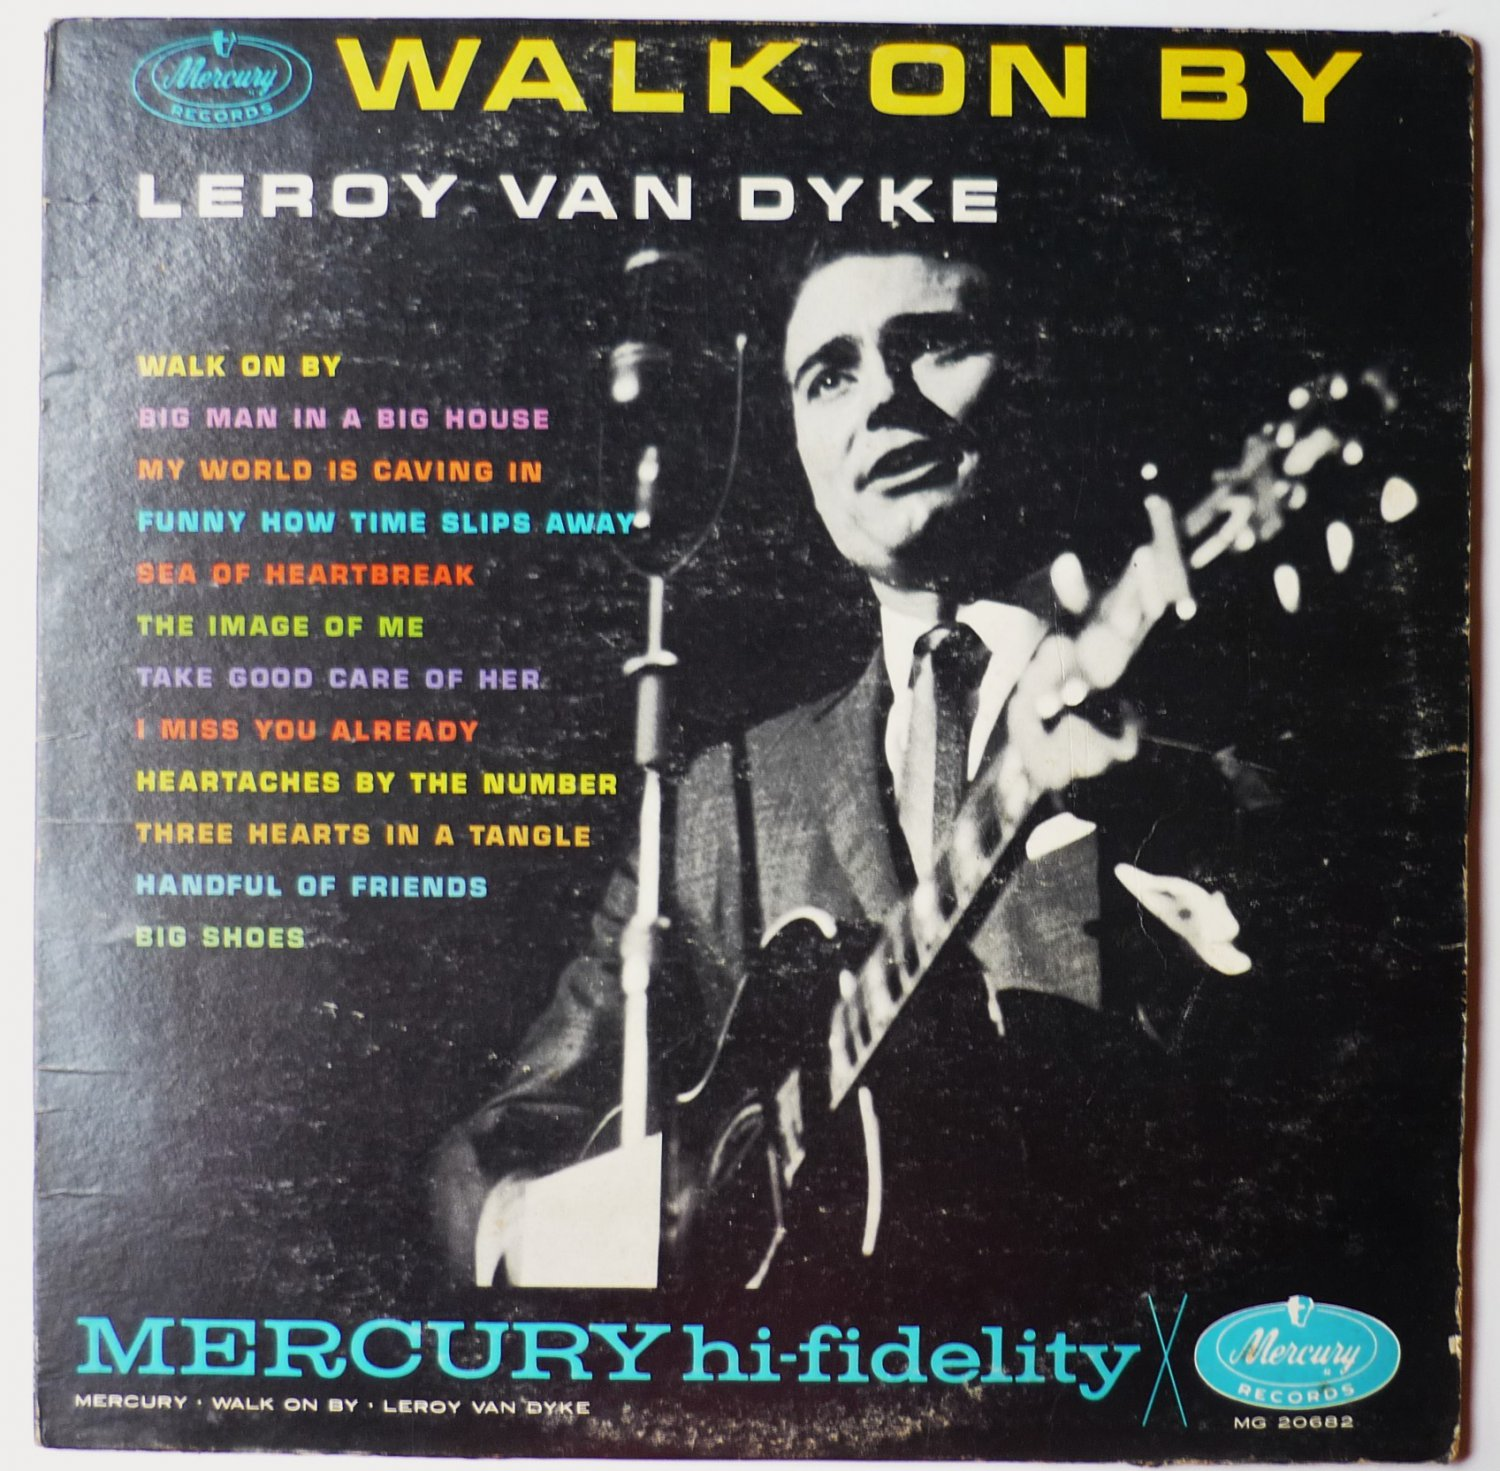 Walk on By - Autographed lp by Leroy Van Dyke